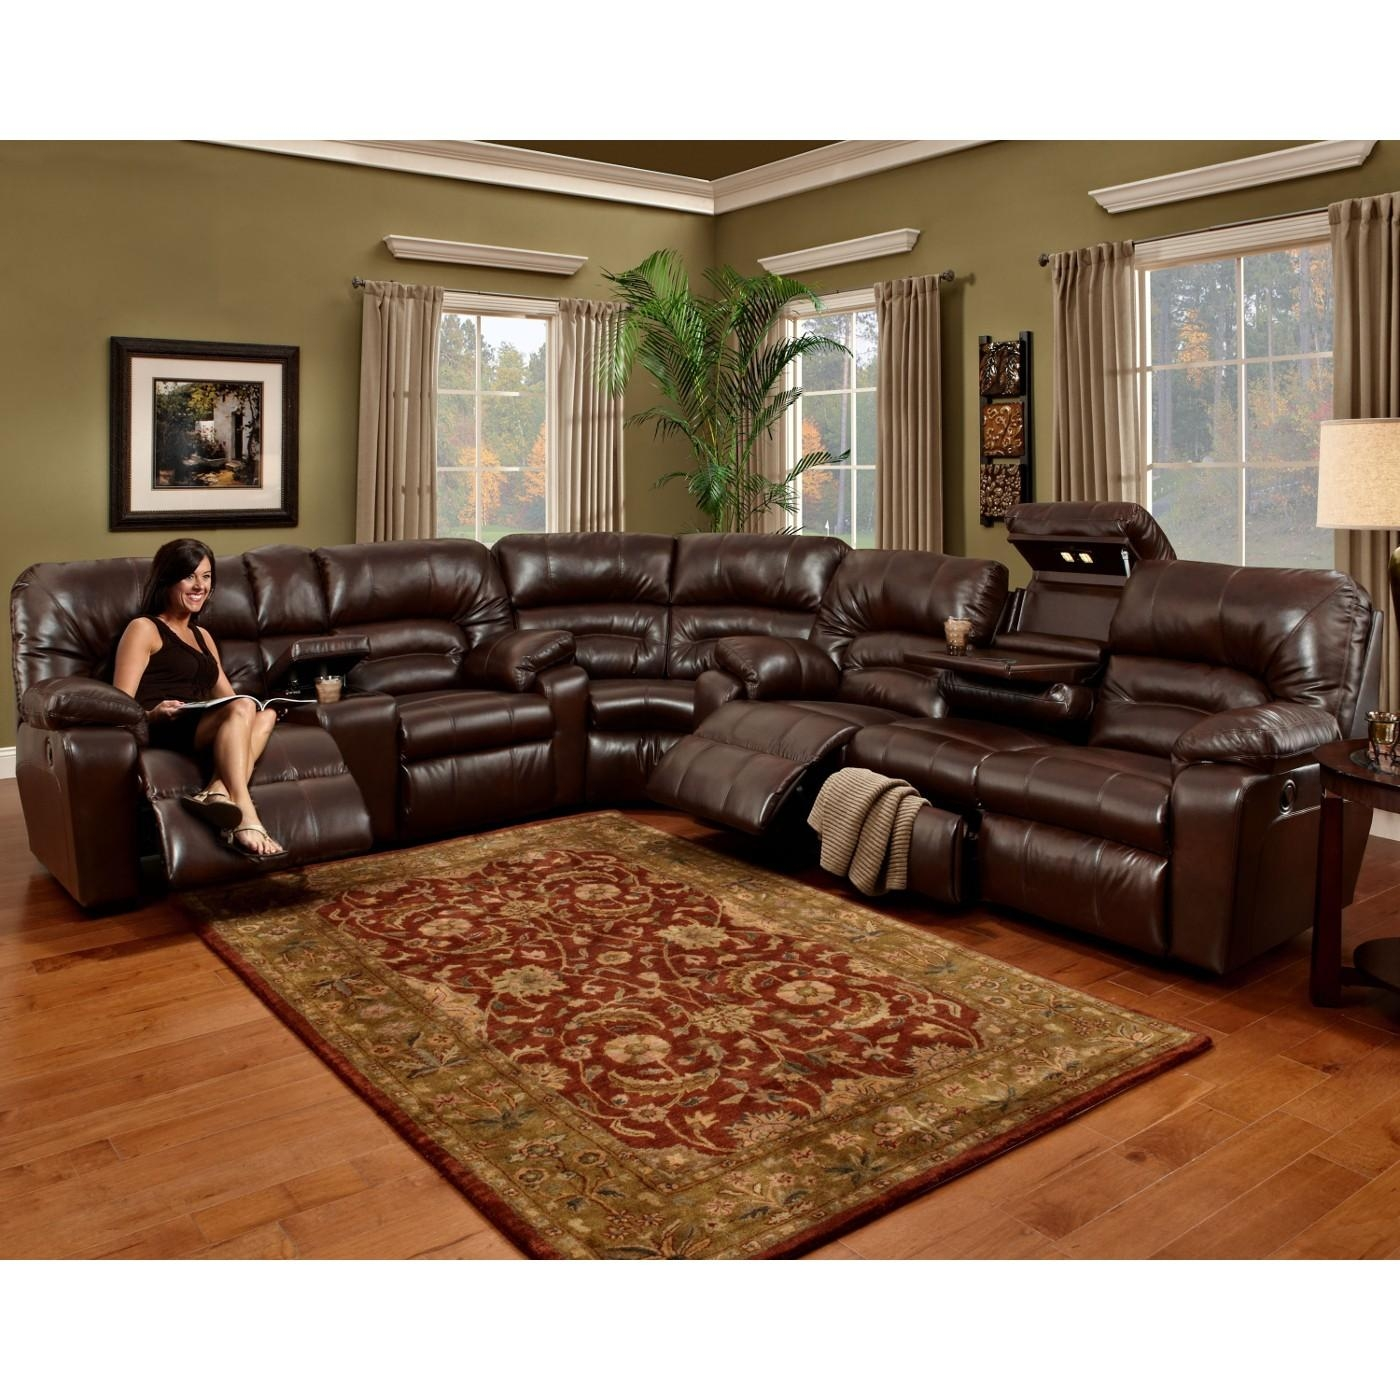 Media Room Sectional Sofas Artistic Color Decor Best With Media With Regard To Media Room Sectional (View 8 of 20)